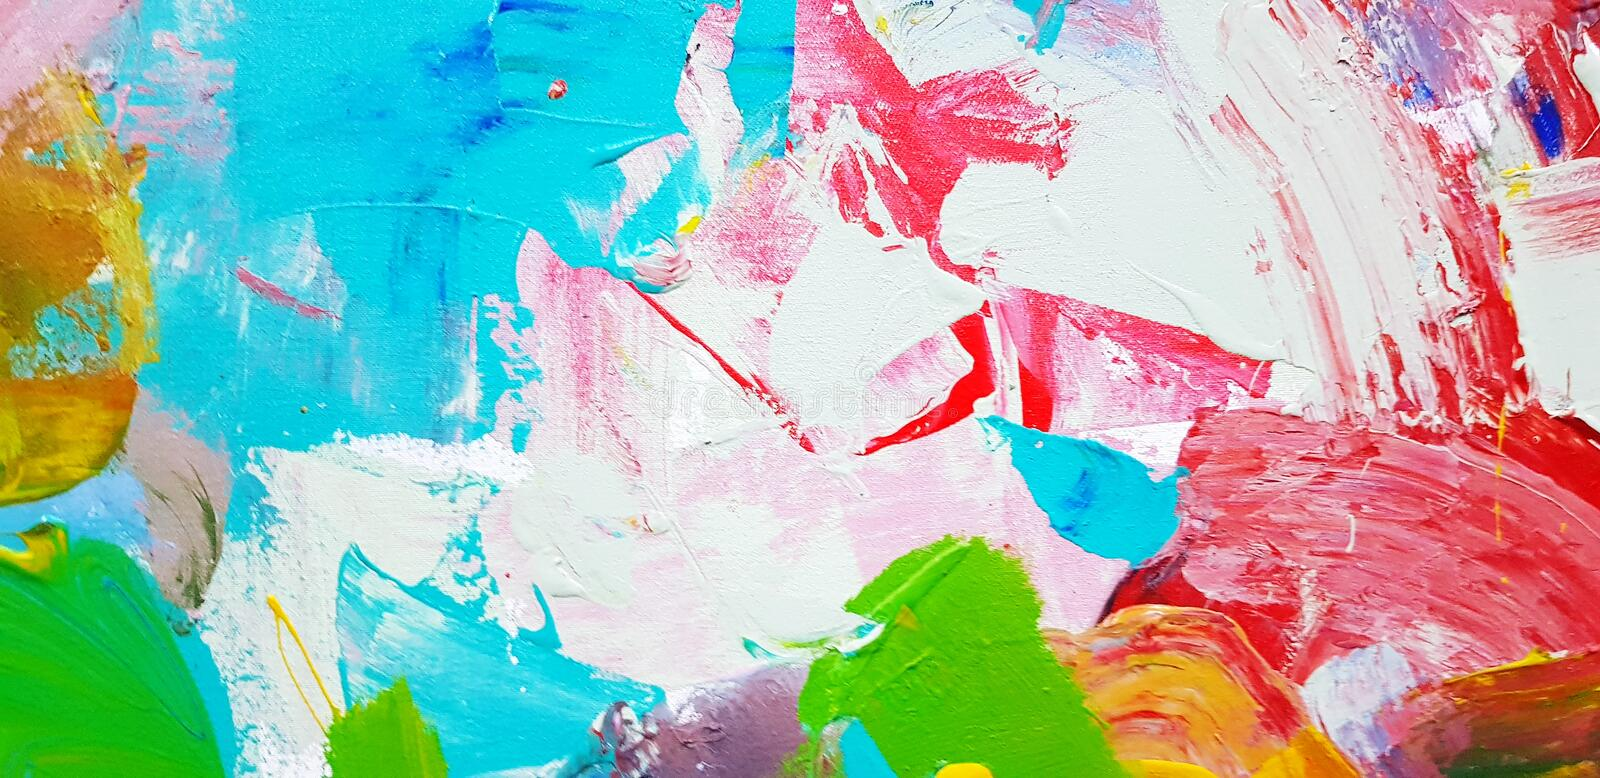 Colorful abstract background painted on canvas frame in acrylic color style. royalty free stock images